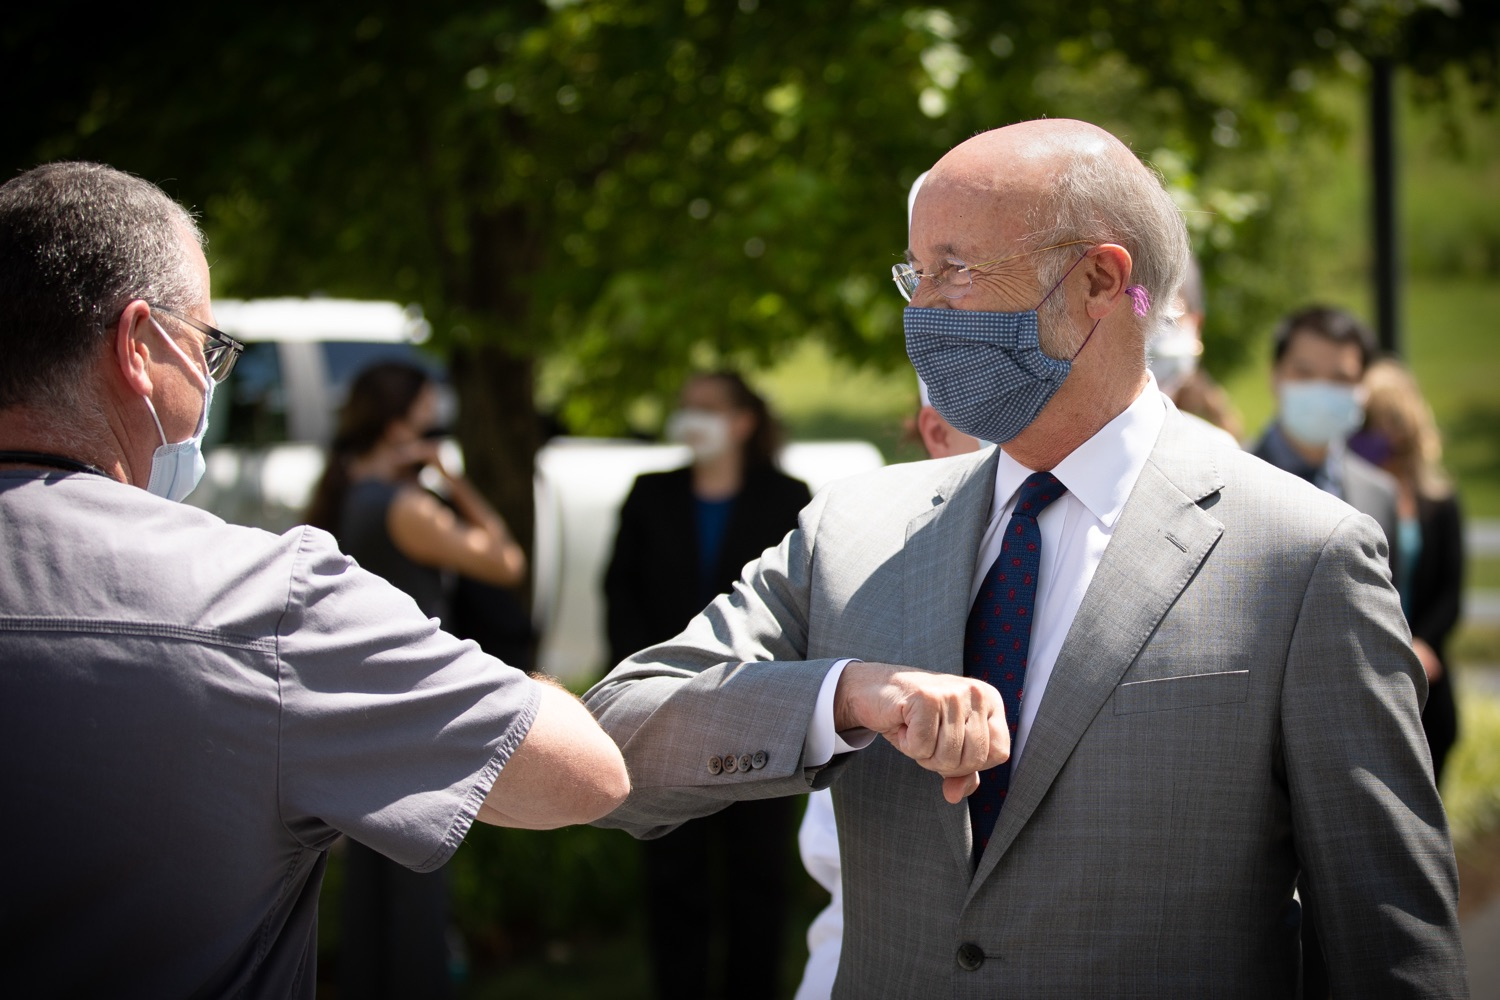 """<a href=""""https://filesource.wostreaming.net/commonwealthofpa/photo/18093_gov-healthcare_workers_dz_03.jpg"""" target=""""_blank"""">⇣Download Photo<br></a>Pennsylvania Governor Tom Wolf bumping elbows with medical workers during his visit to Milton S. Hershey Medical Center. As the commonwealth continues its measured, phased reopening and COVID-19 case counts continue to decline, Governor Tom Wolf visited Penn State Milton S. Hershey Medical Center today to thank staff and learn more about how the facility is handling the pandemic and preparing for a possible resurgence in the fall.  Harrisburg, PA  June 24, 2020"""